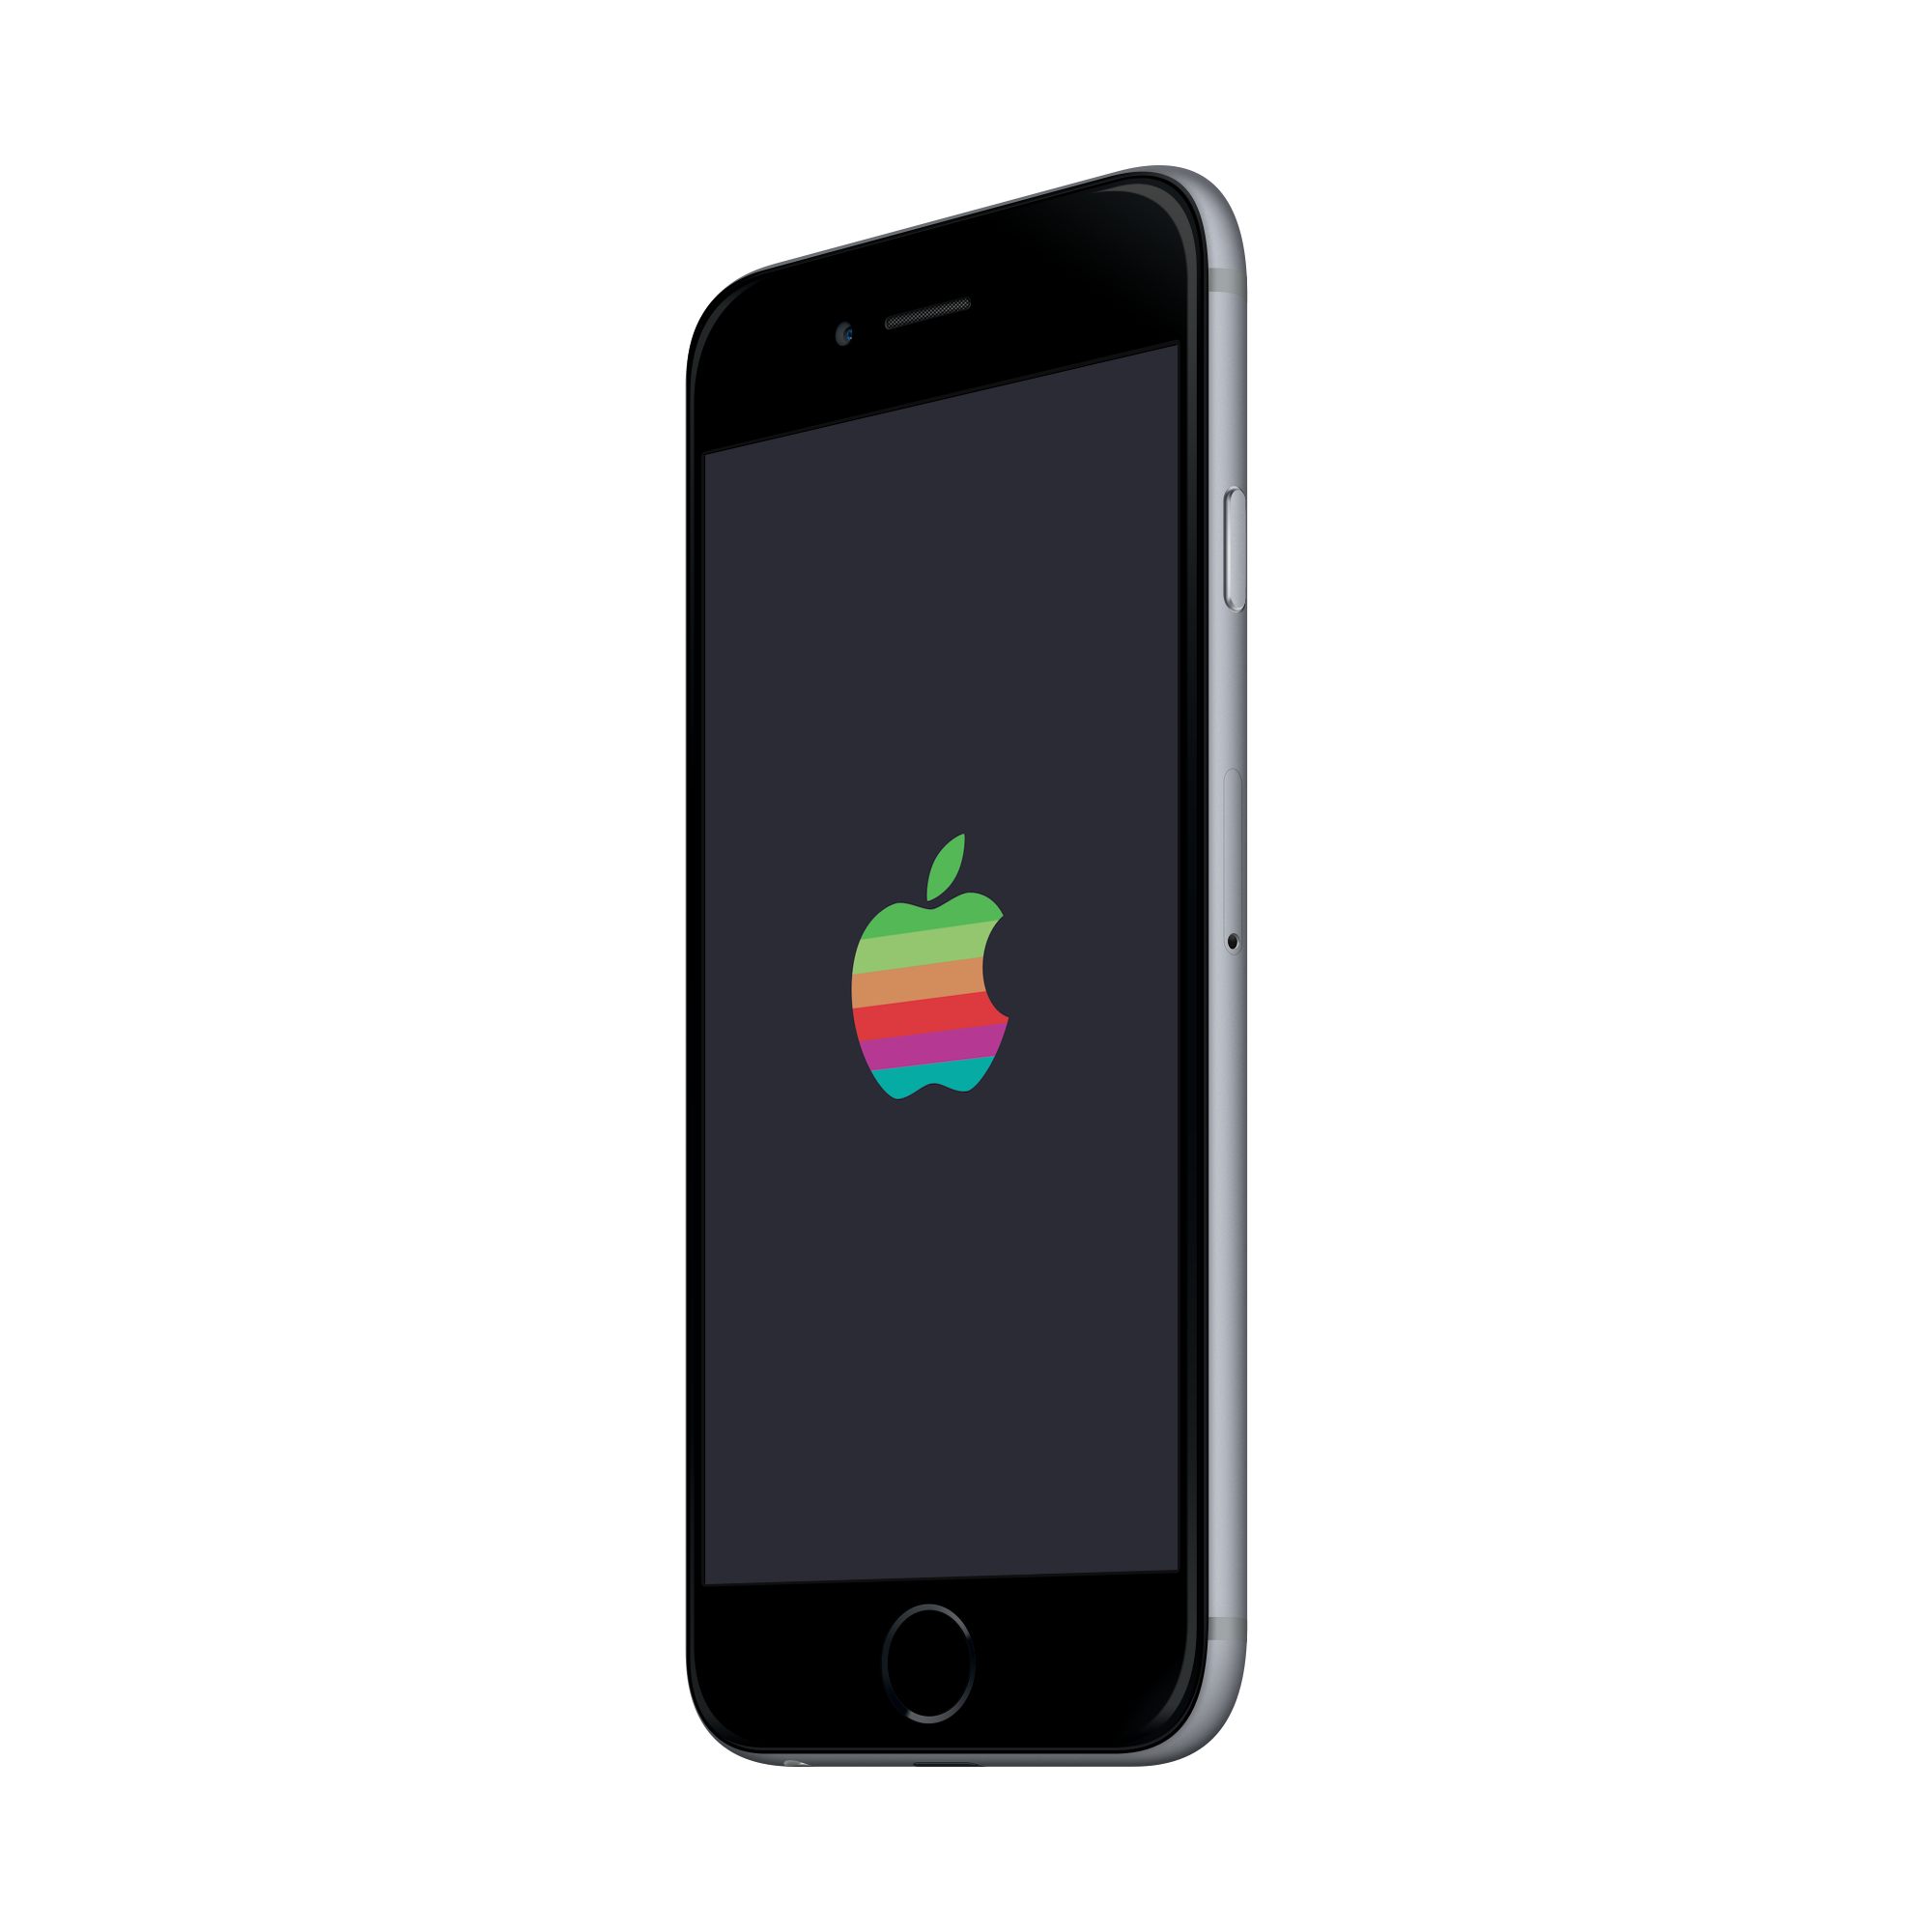 Apple iphone off clipart clip transparent library Retro Apple Logo WWDC 2016 wallpapers clip transparent library